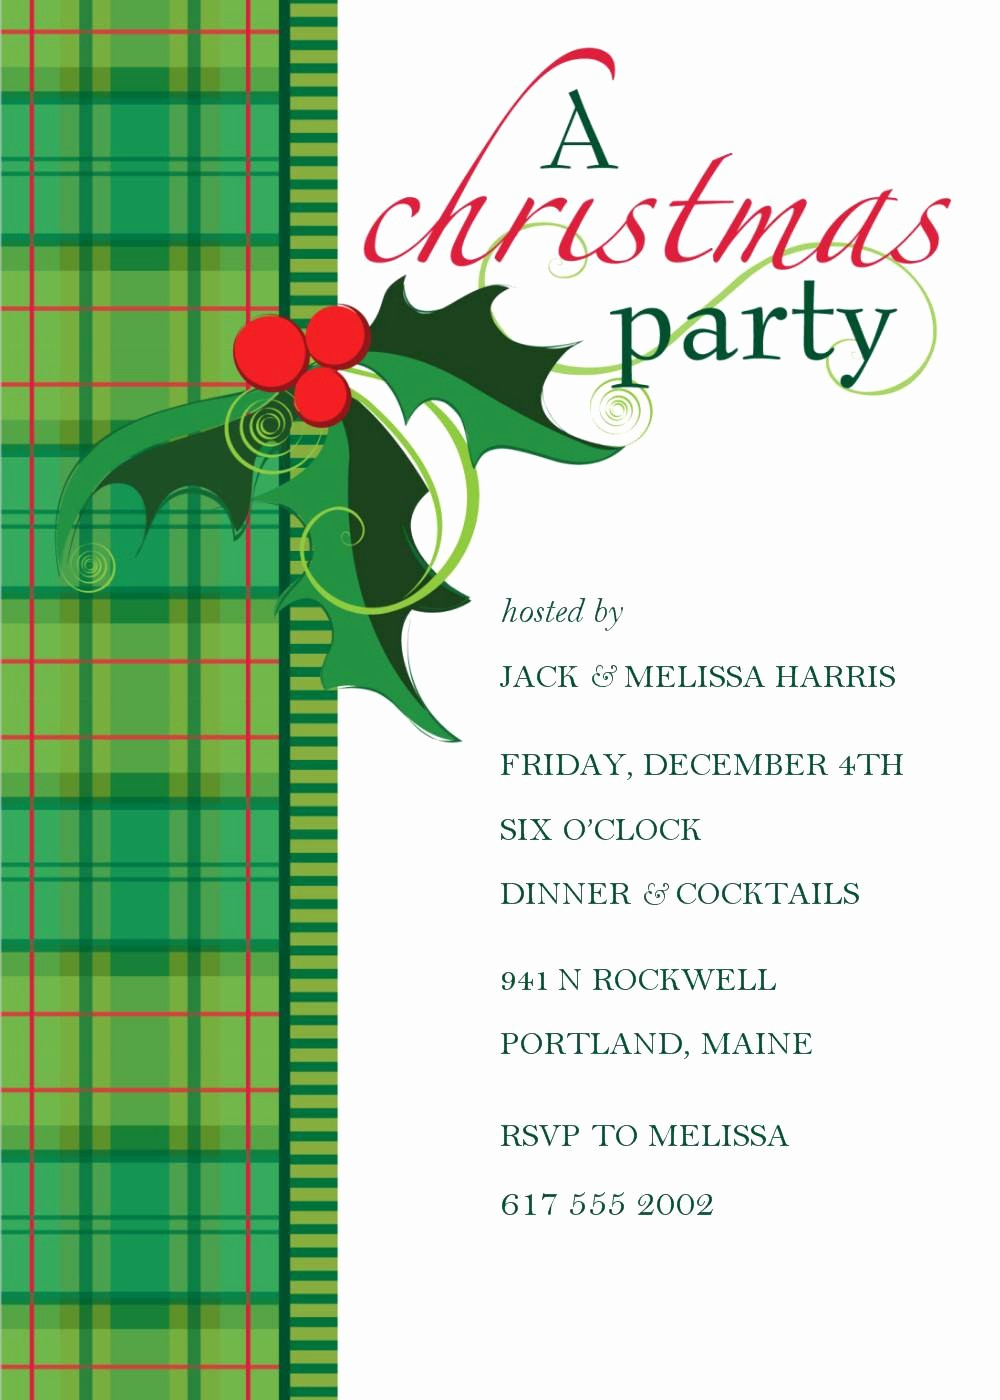 Party Invitation Templates Free Download Unique Christmas Invitation Download Templates Free